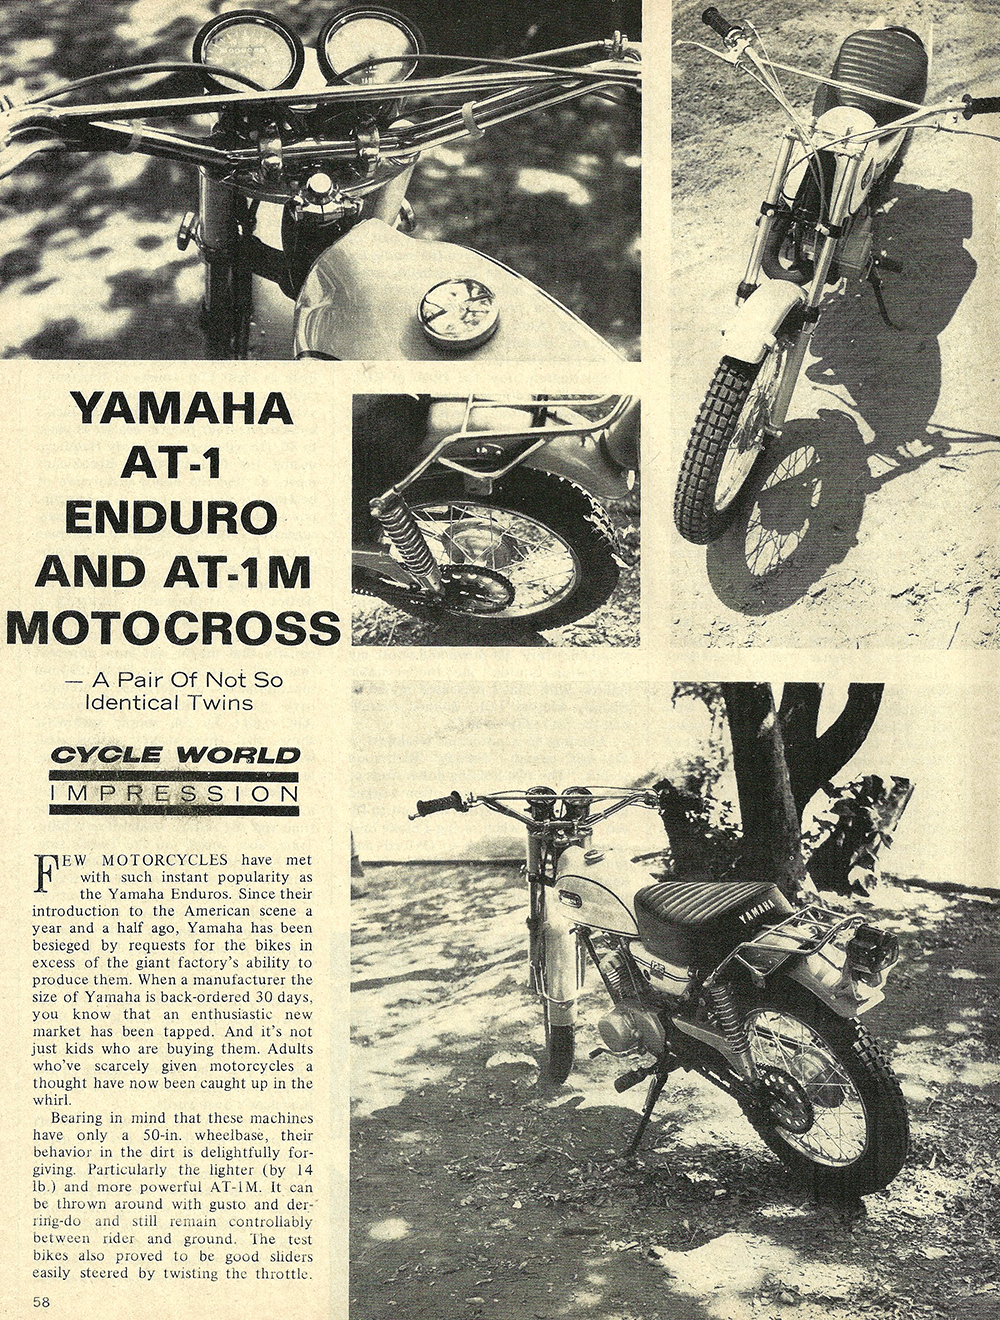 1970 Yamaha AT1 enduro AT1M Motocross road test 01.jpg